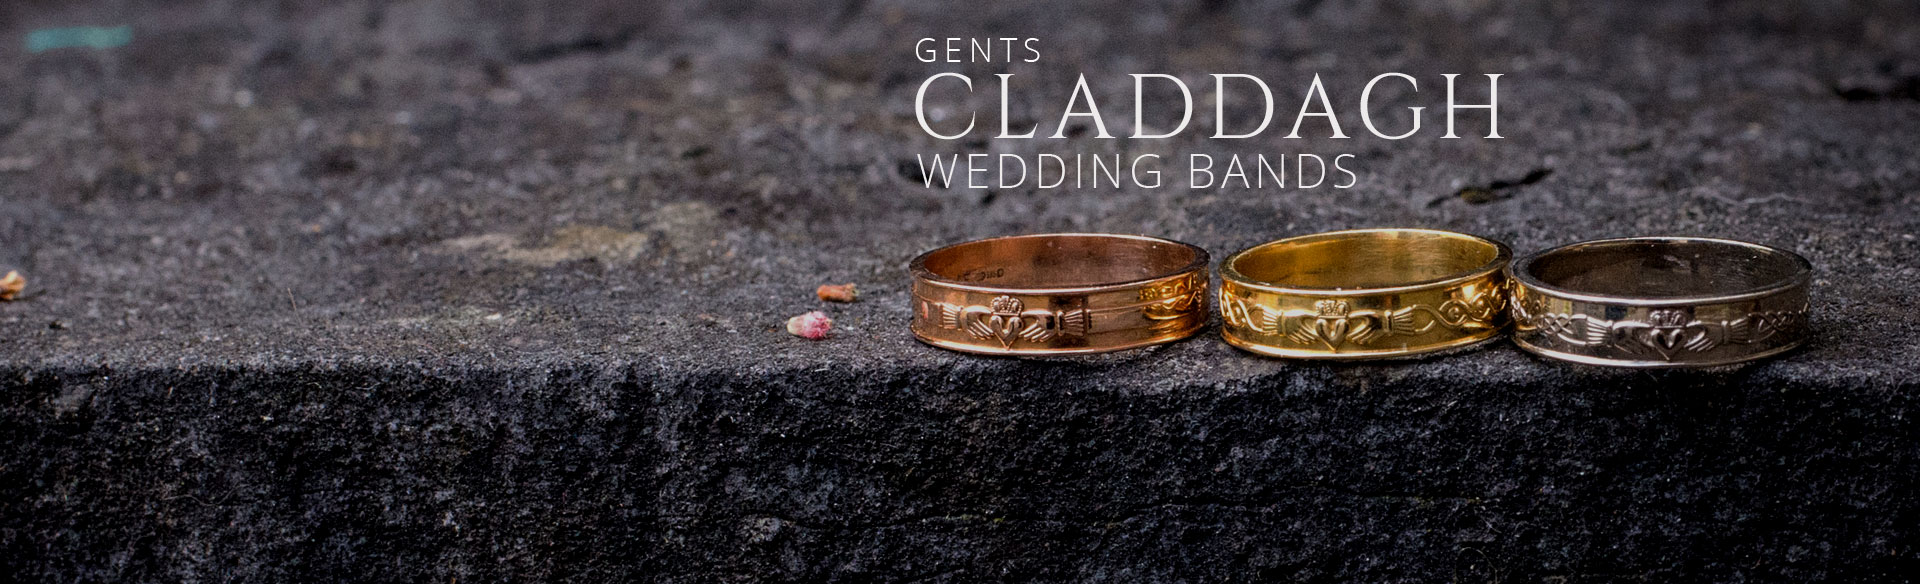 Gents Claddagh Wedding Bands